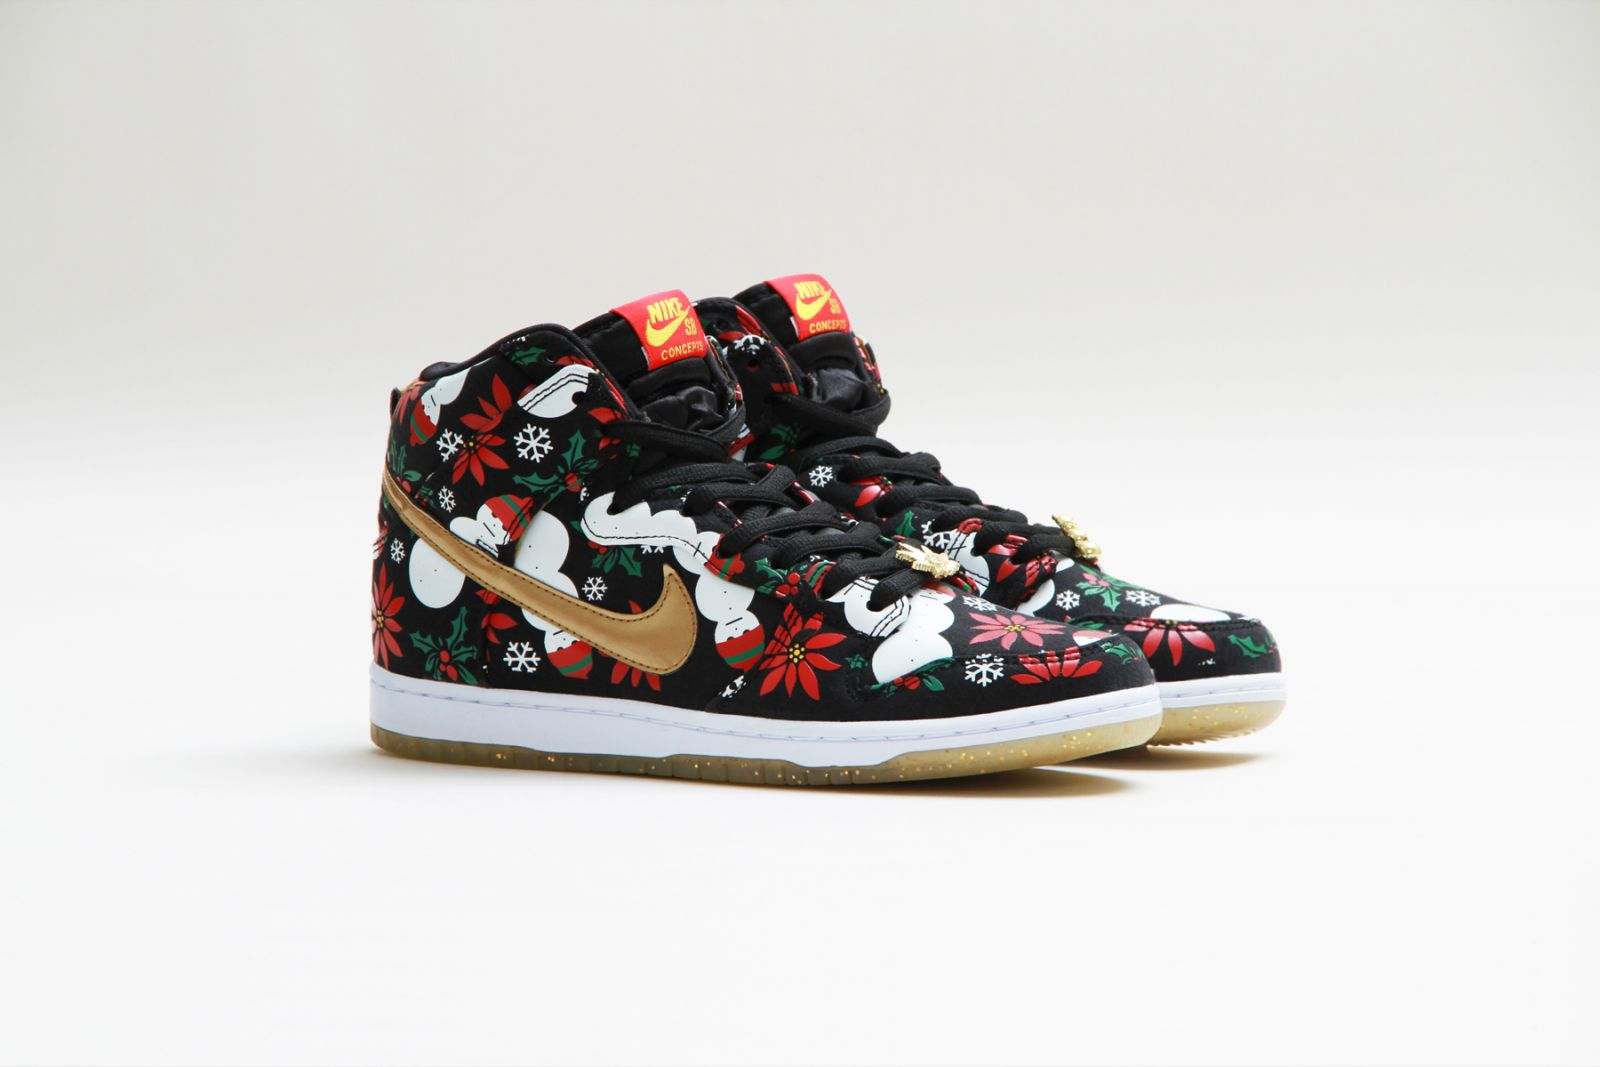 Concepts x Nike SB \'Ugly Christmas Sweater\' Pack | Sole Collector